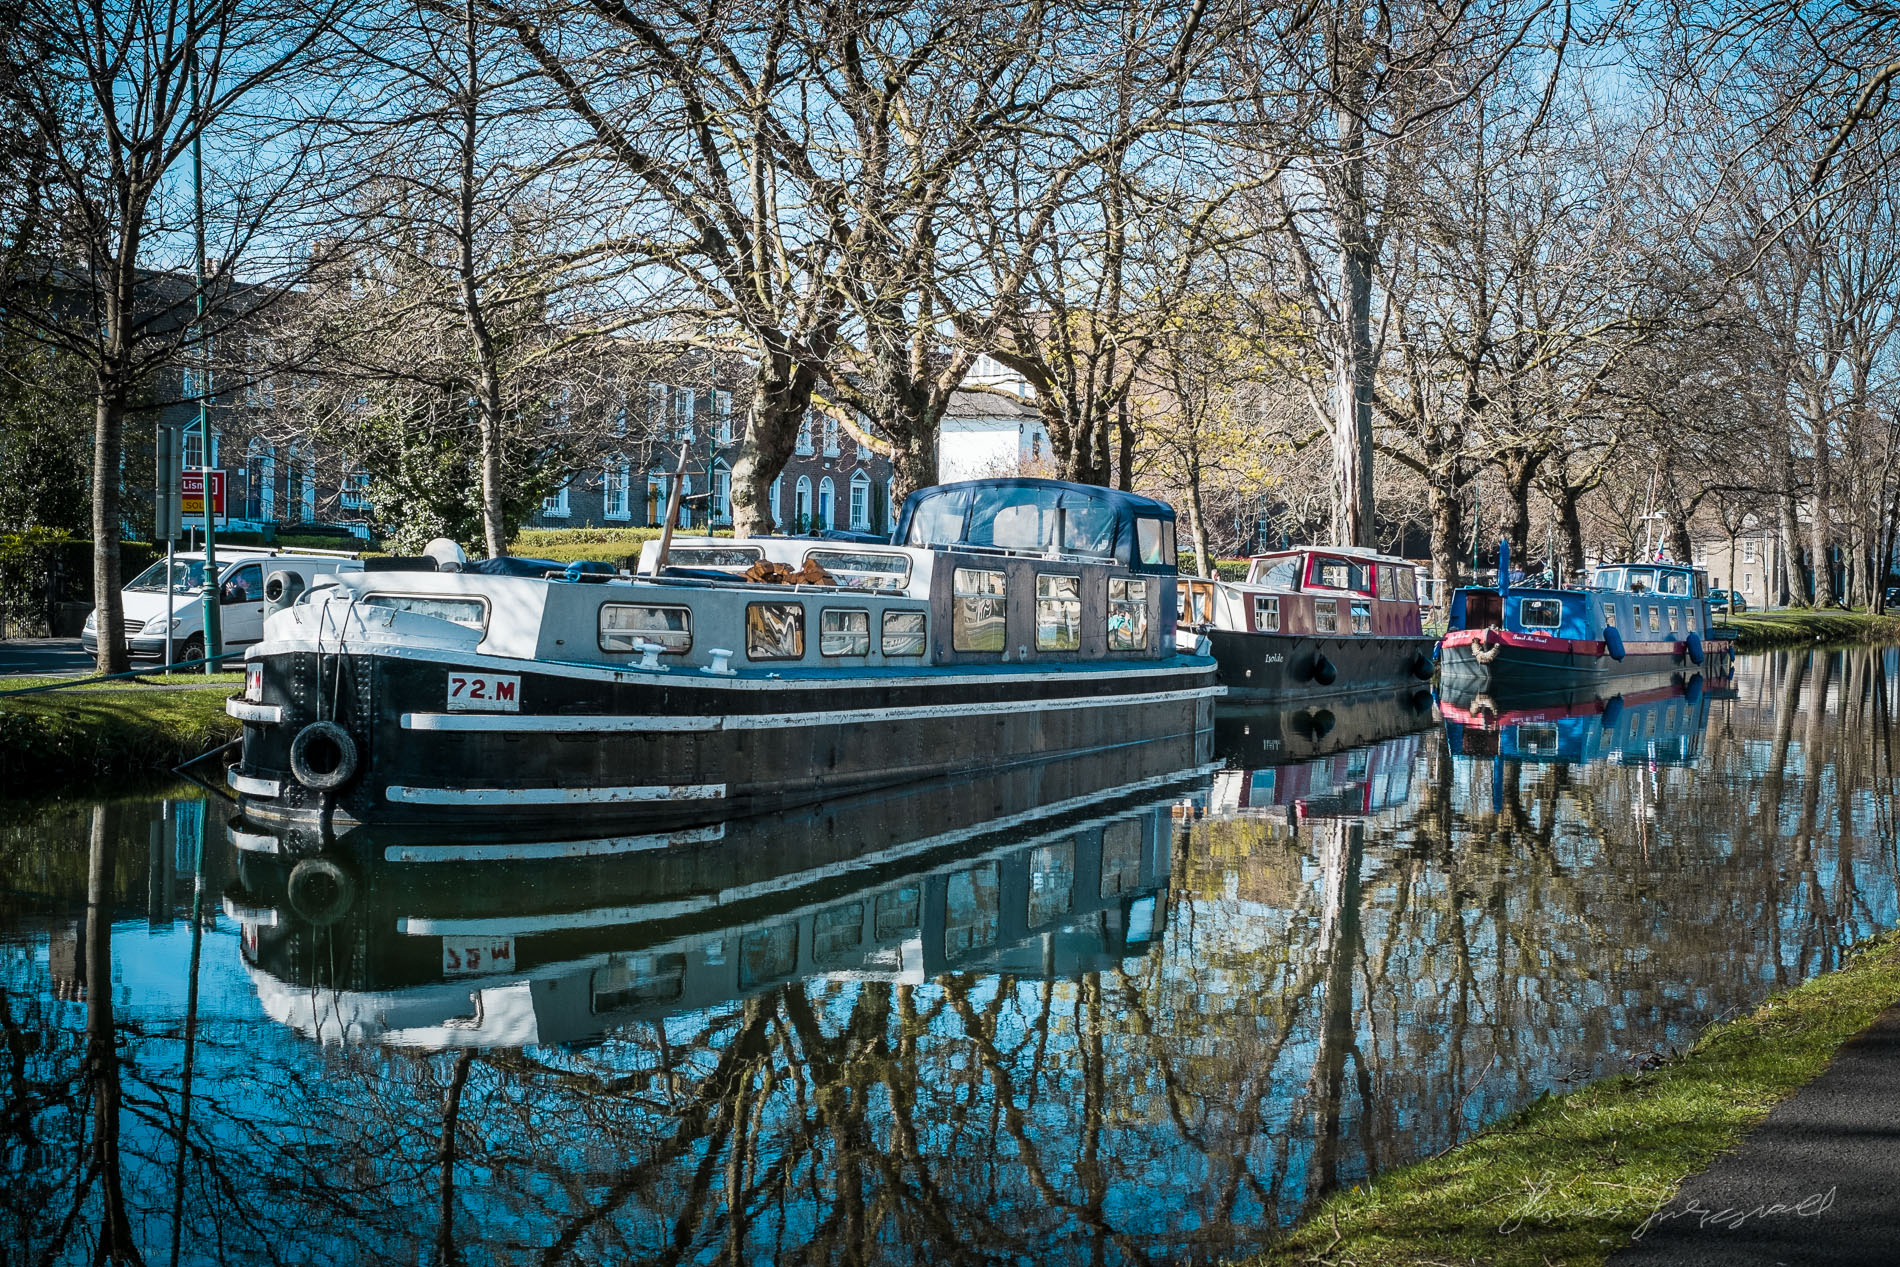 Barges in the Sunshine - Fuji XE1